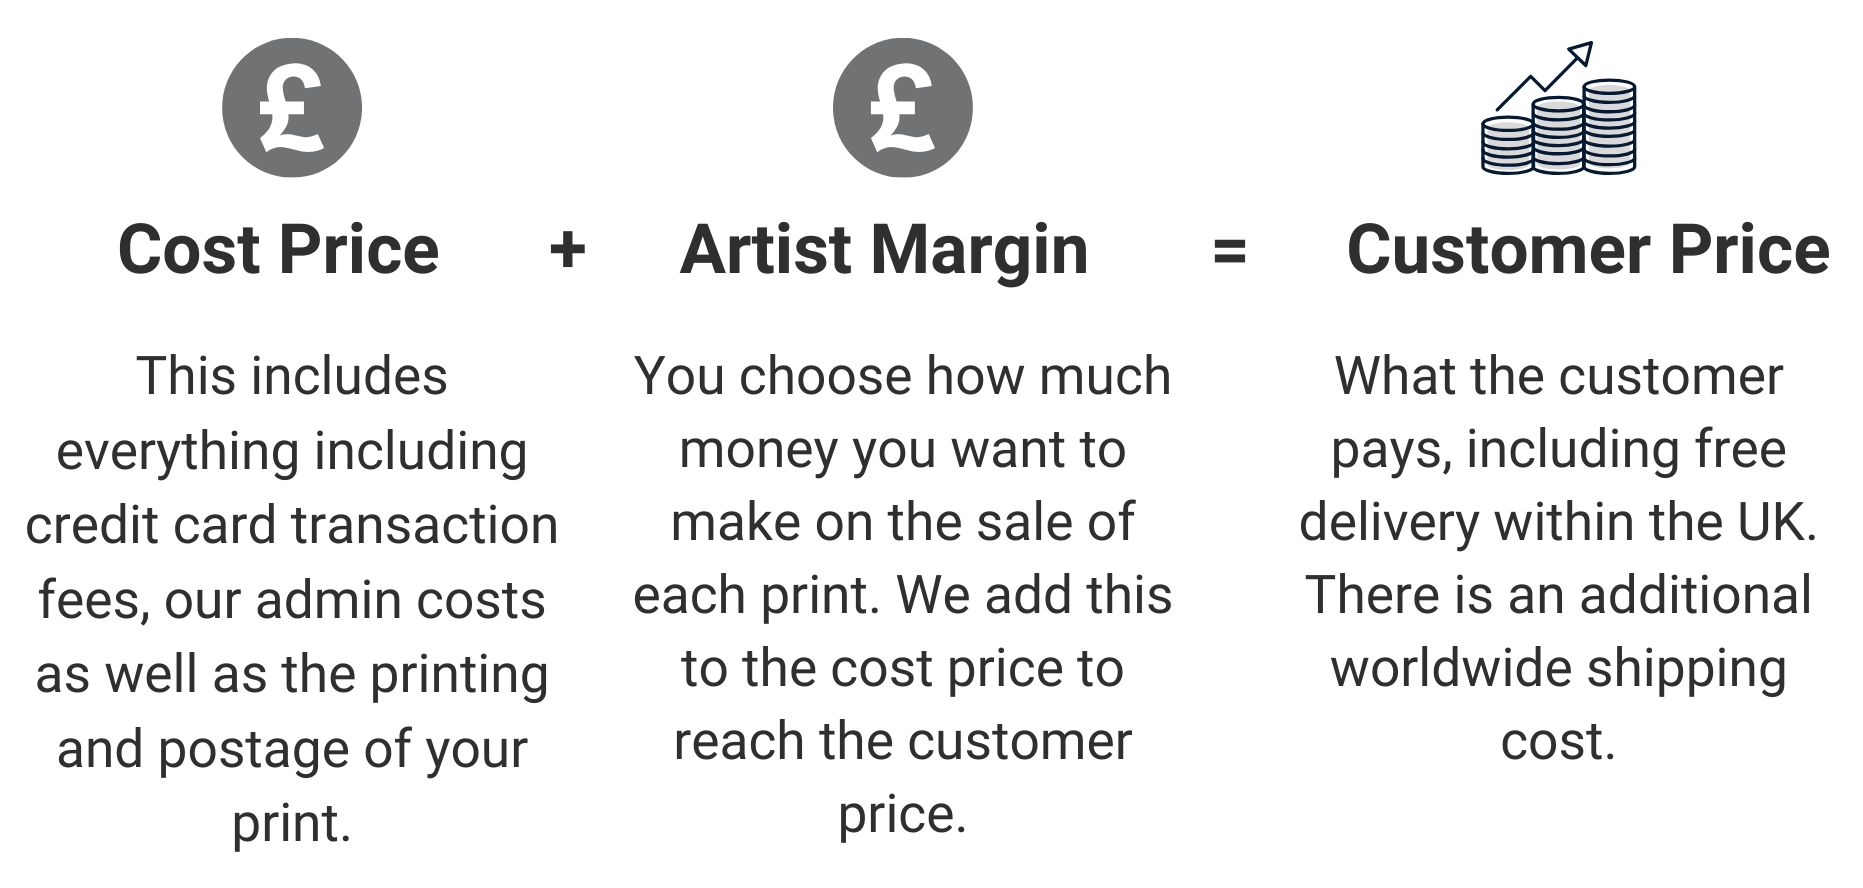 Cost Price + 	Artist Margin =	Customer Price This includes everything including credit card transaction fees, our admin costs as well as the printing and postage of your print. 	You choose how much you want to make on the sale of each print. We add this to the cost price to reach the customer price.	What the customer pays, including free delivery within the UK. There is an additional worldwide shipping cost.